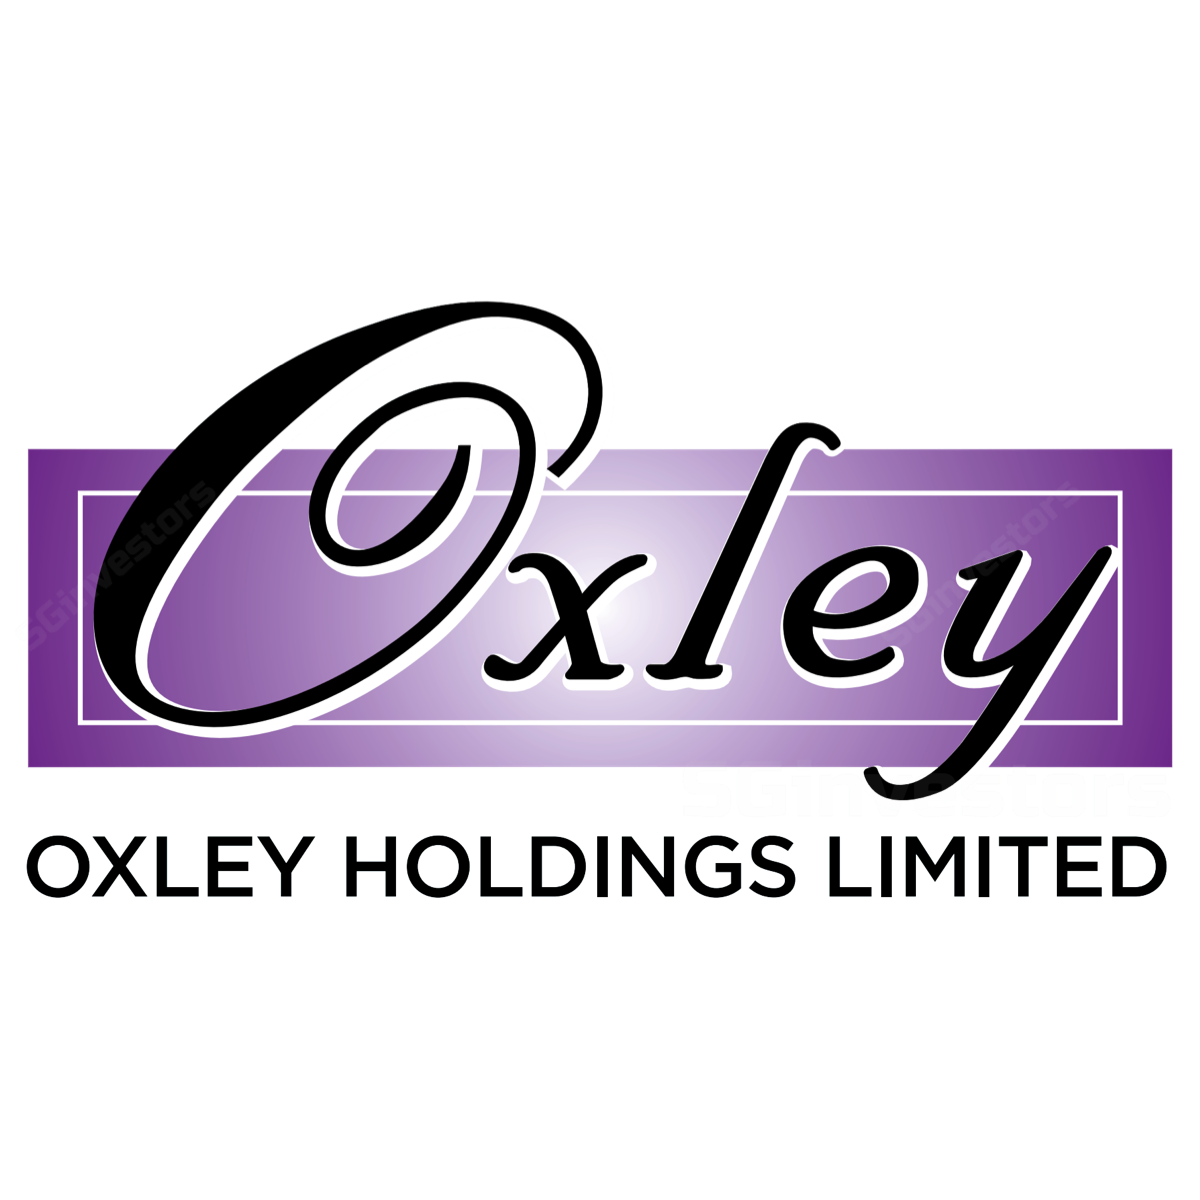 OXLEY HOLDINGS LIMITED (SGX:5UX) | SGinvestors.io